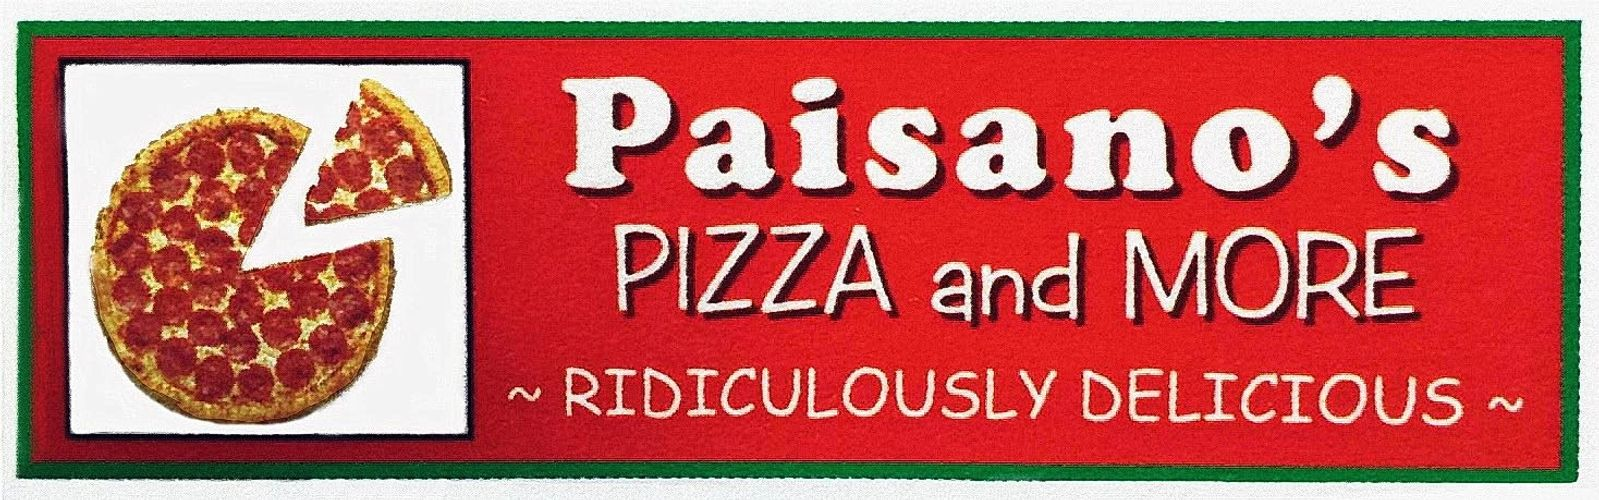 Pizza, Subs, Pasta, Wings, Ribs, Salad, Desserts, Dinners, Catering, Bakery, Paisano's Pizza